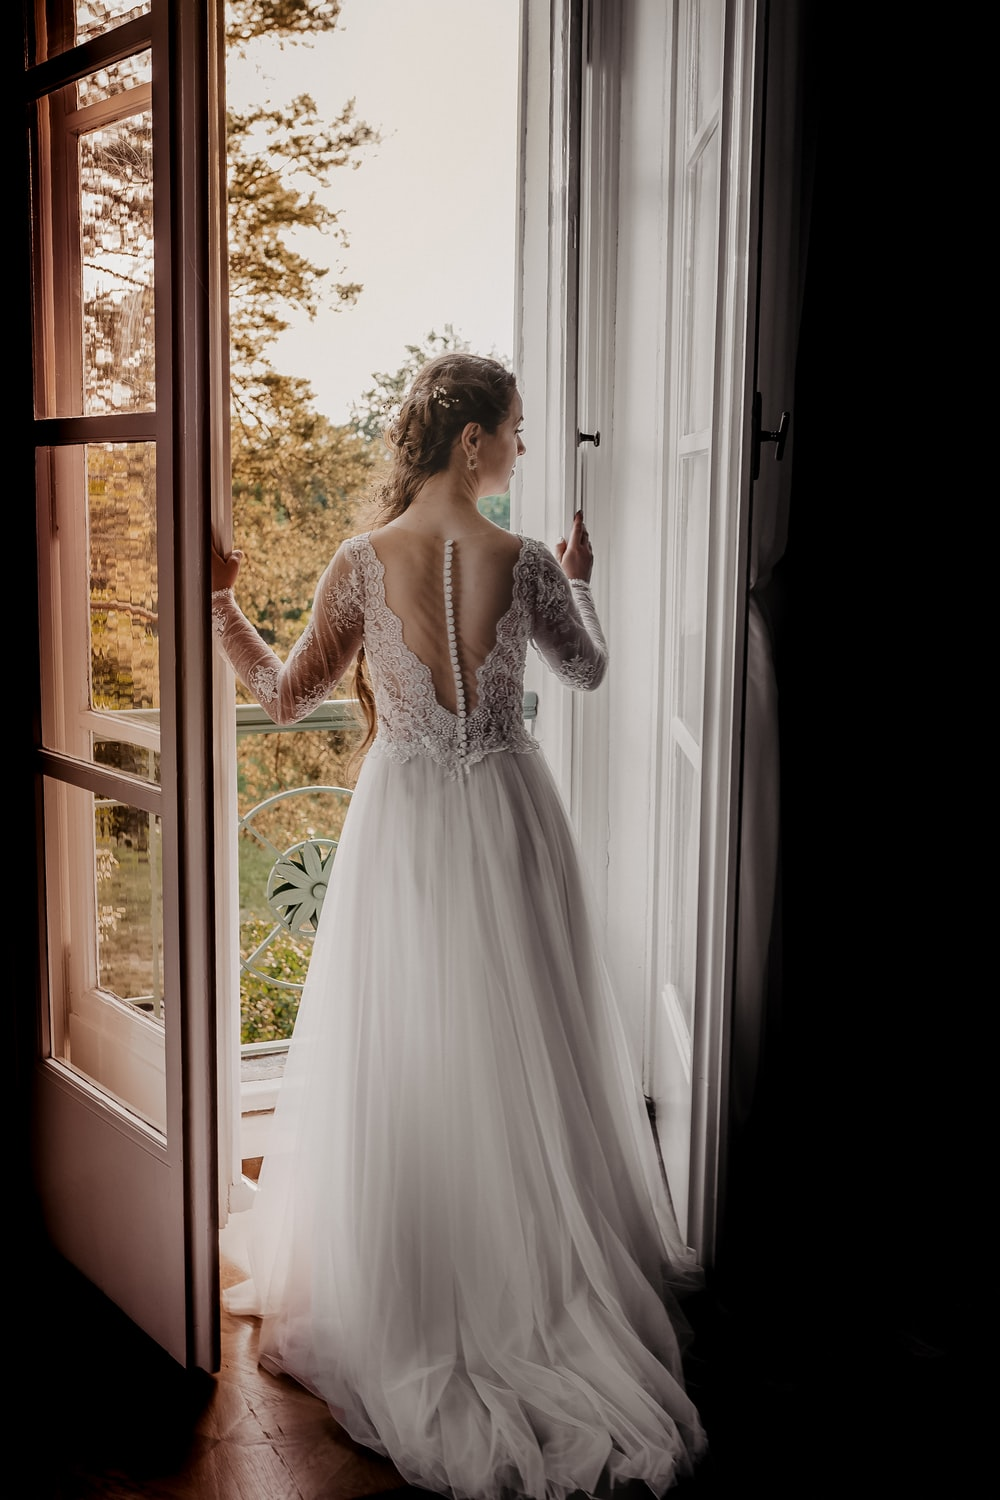 woman in white floral dress standing beside window during daytime